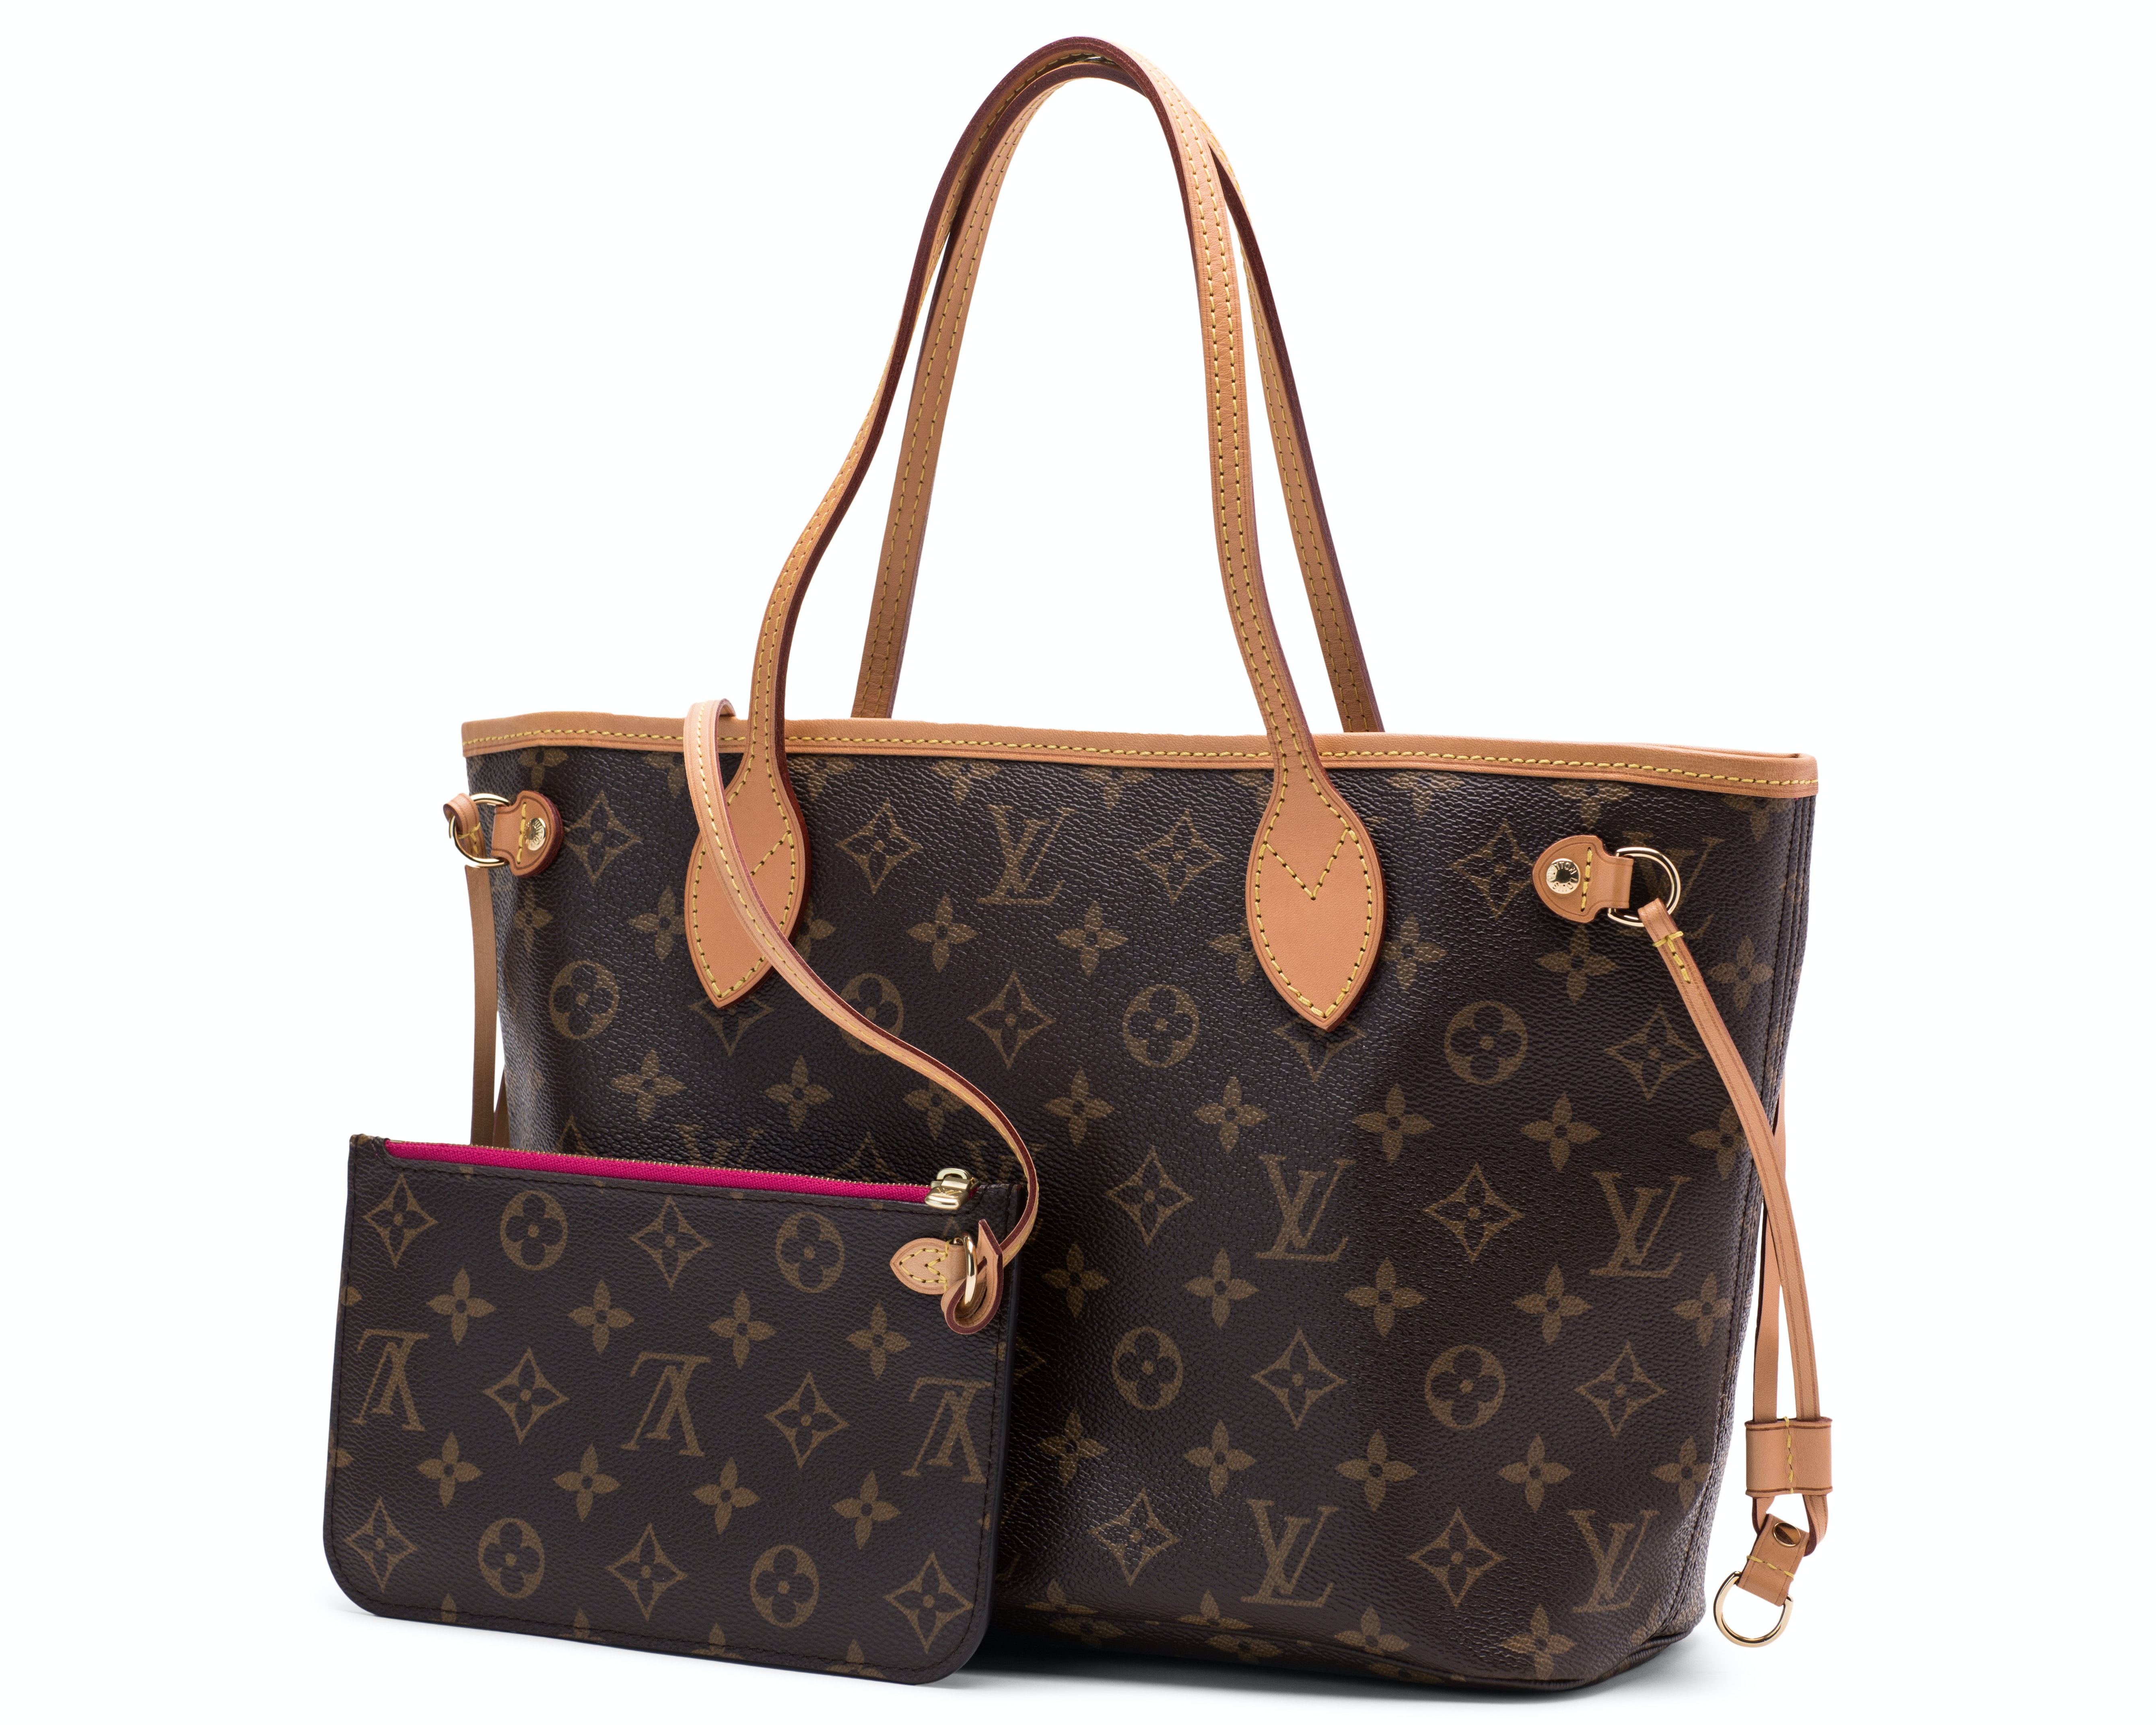 Louis Vuitton Neverfull Monogram PM (With Pouch) Brown